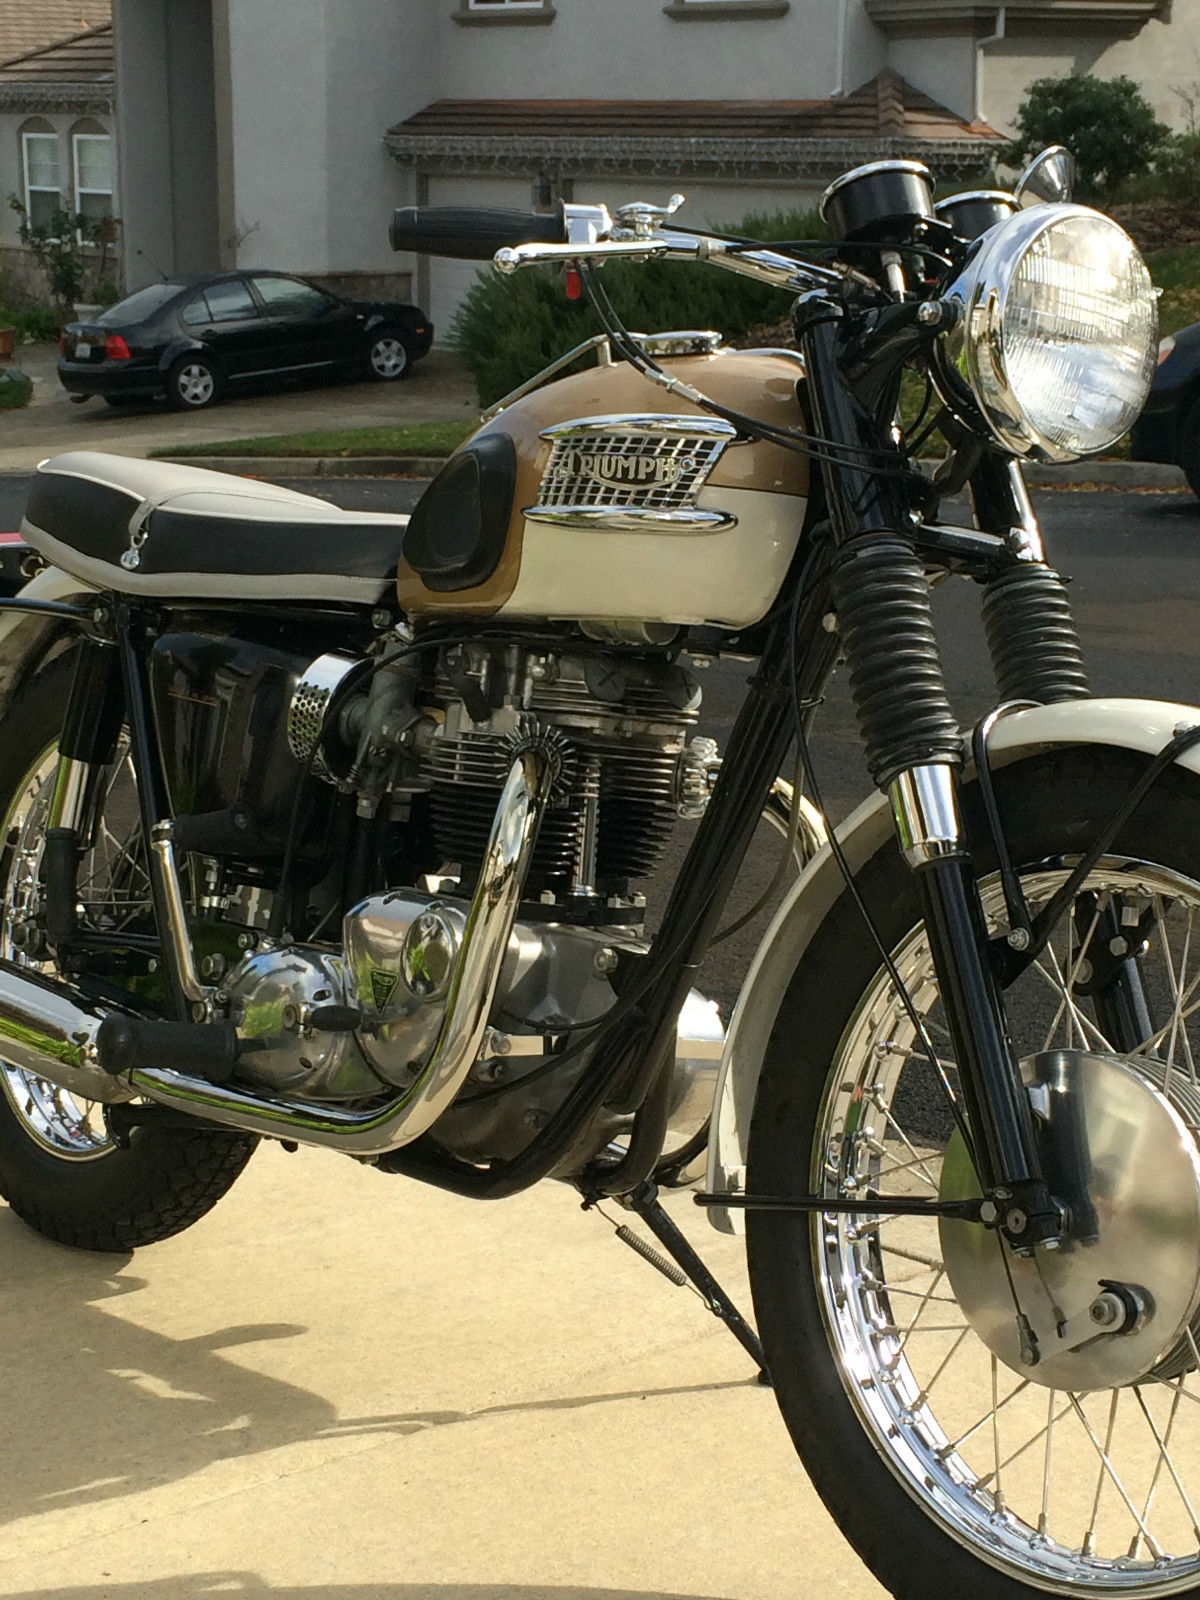 Triumph Bonneville - 1964 - Motor and Transmission, Mufflers, Fender, Forks, Triumph Badge, Seat and Kick Start.